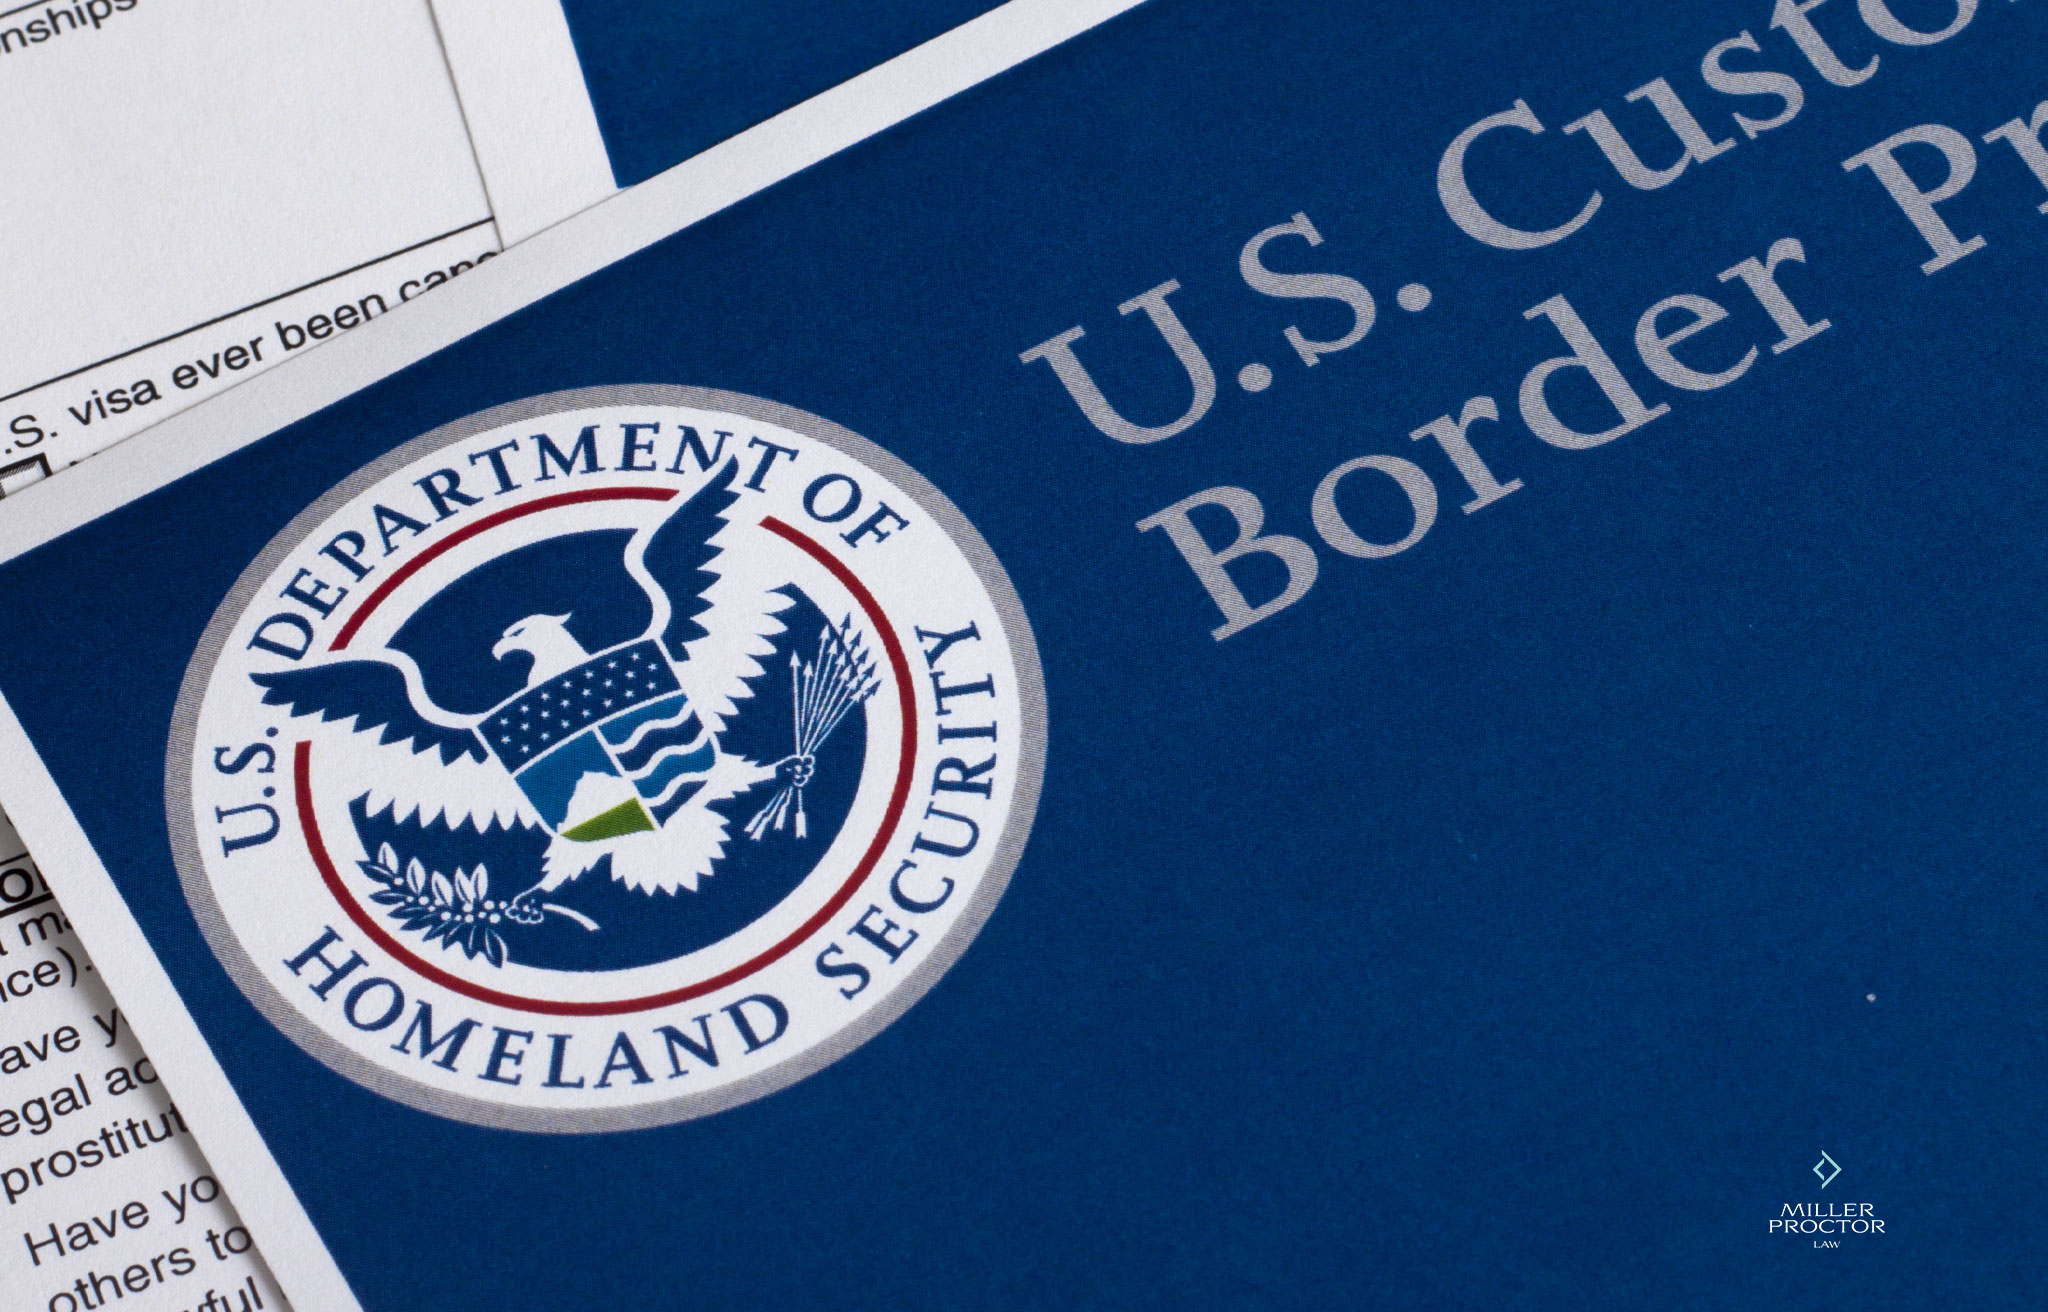 CBP Consider 56 Comments Submitted In Response To Proposed Amendments To The Customs Brokers Regulations